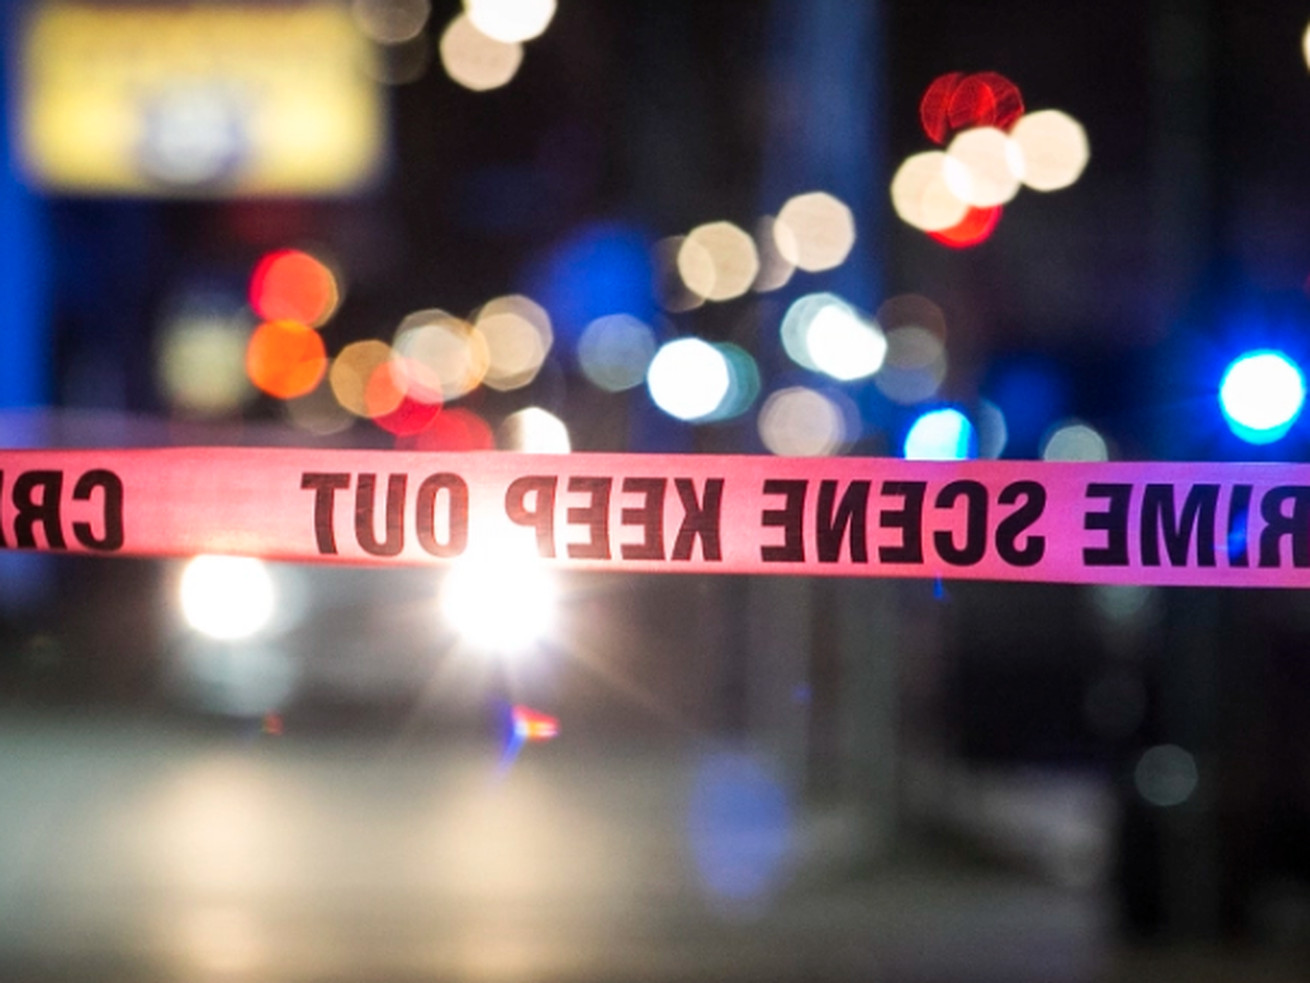 A 16-year-old boy was shot April 26, 2021 in West Pullman.